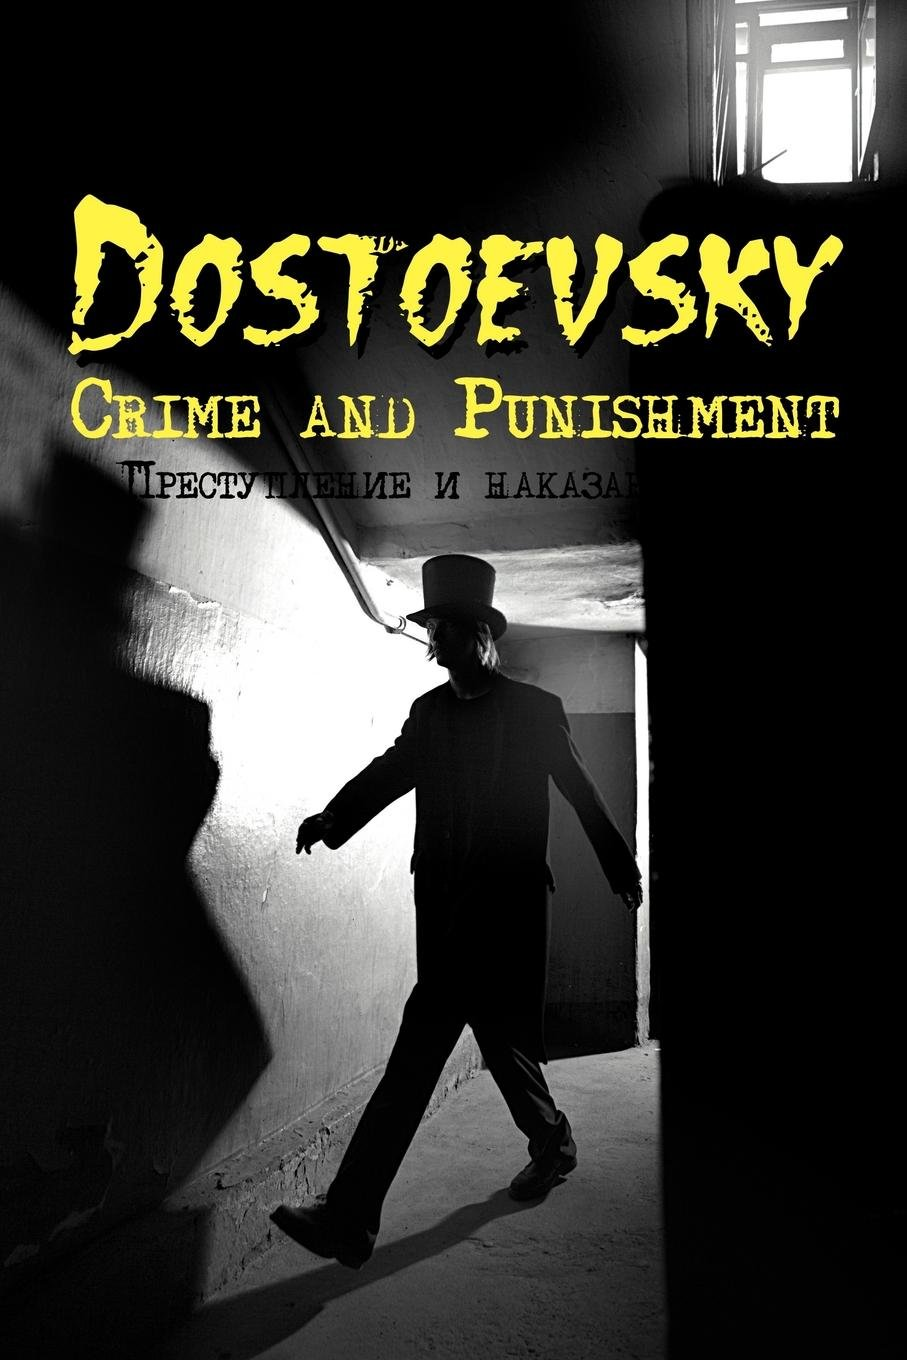 Russian Classics in Russian and English: Crime and Punishment by Fyodor Dostoevsky (Dual-Language Book) (Russian Edition) by Brand: Alexander Vassiliev